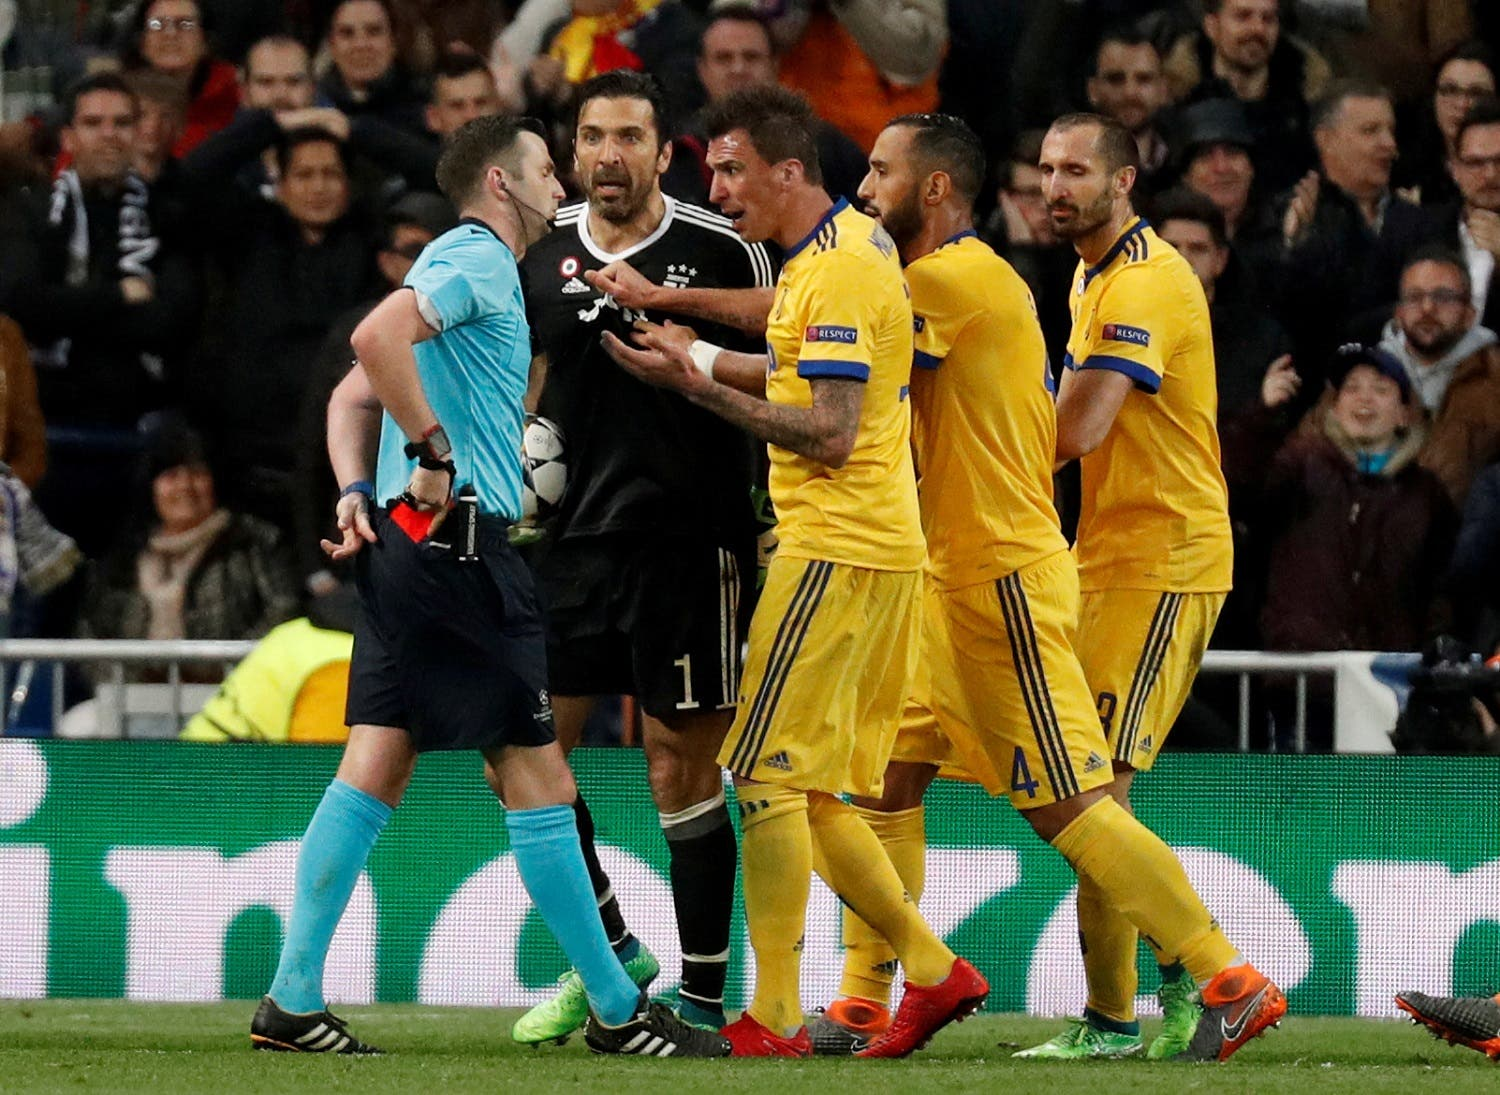 Juventus' Gianluigi Buffon and team mates remonstrate with referee Michael Oliver after he awarded a penalty to Real Madrid. (Reuters)